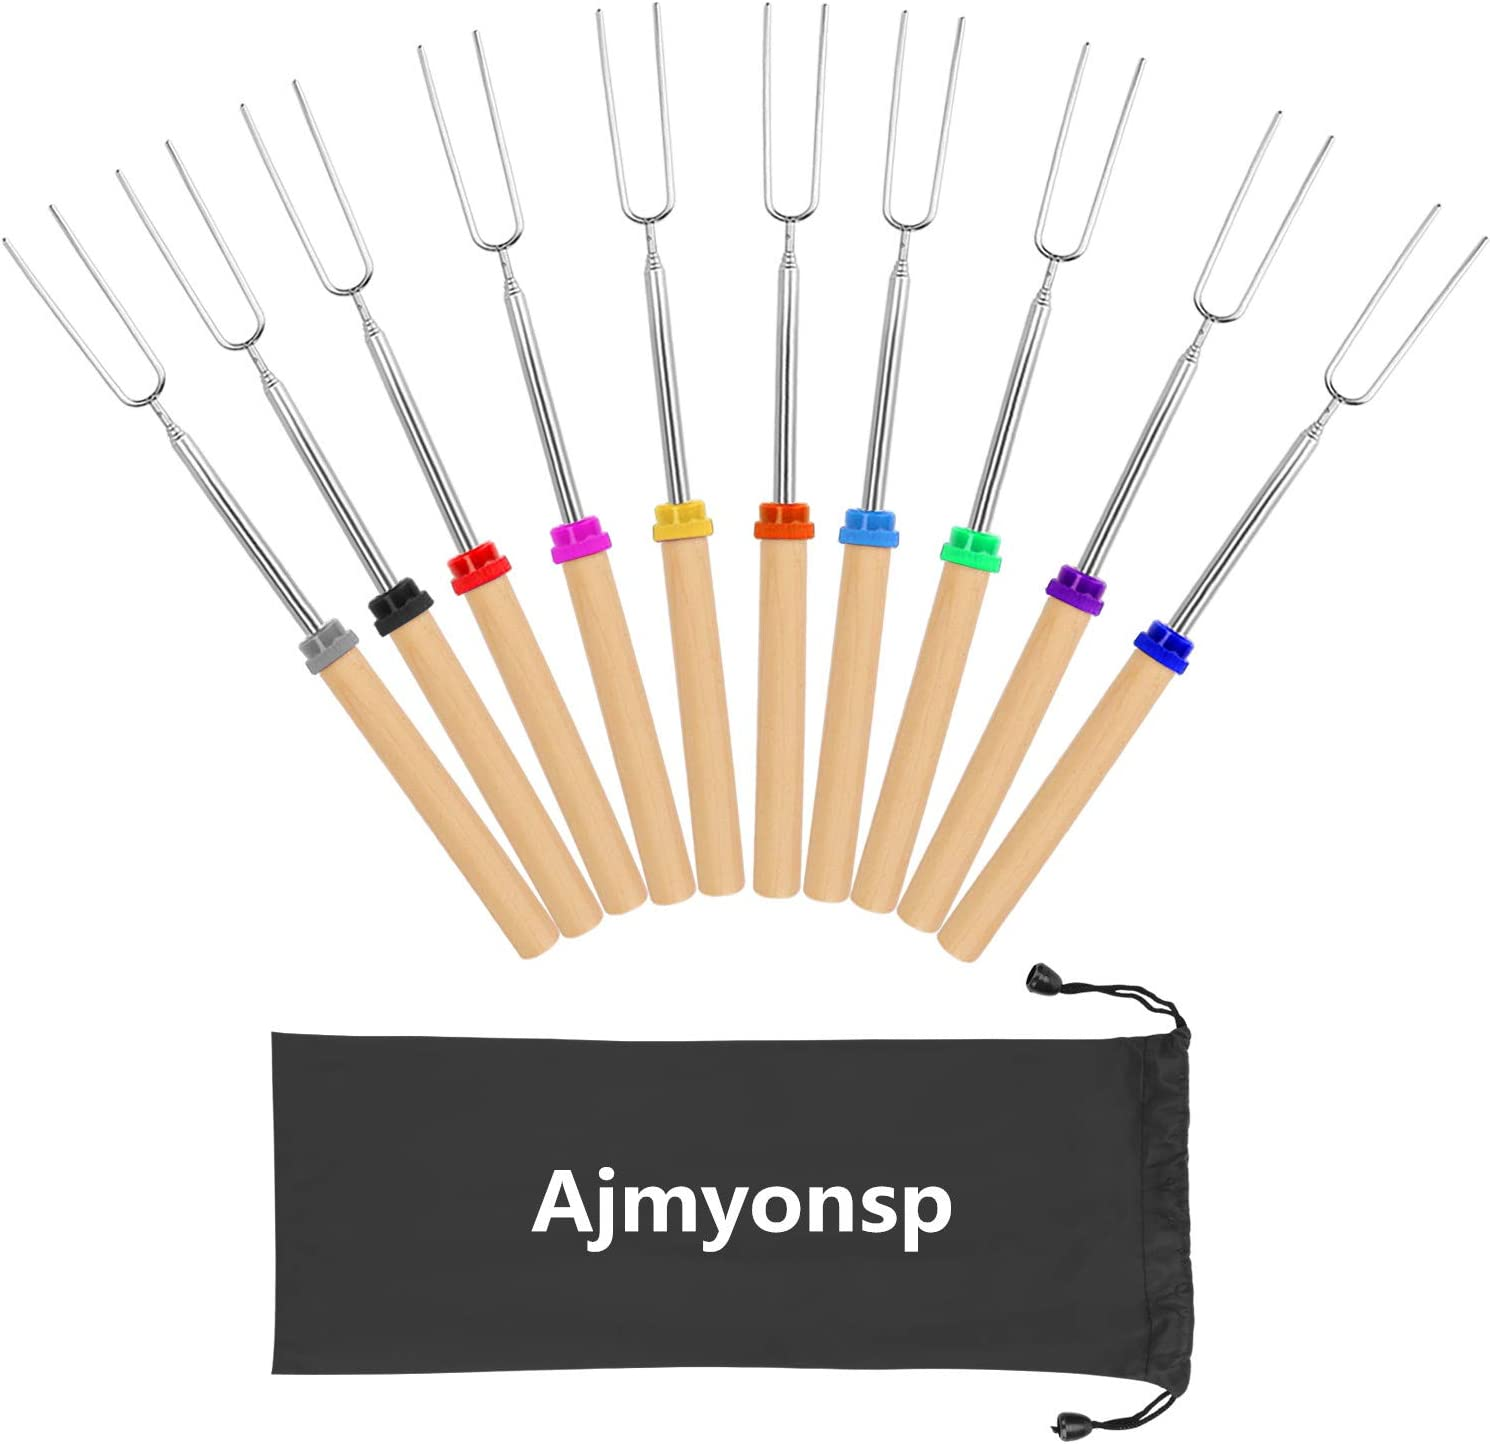 Ajmyonsp Marshmallow Roasting Sticks Smores Skewers Wooden Handle 32Inch Extendable BBQ Forks 10Pcs Telescoping Hotdog S'Mores Kit for Campfire Fire Pit